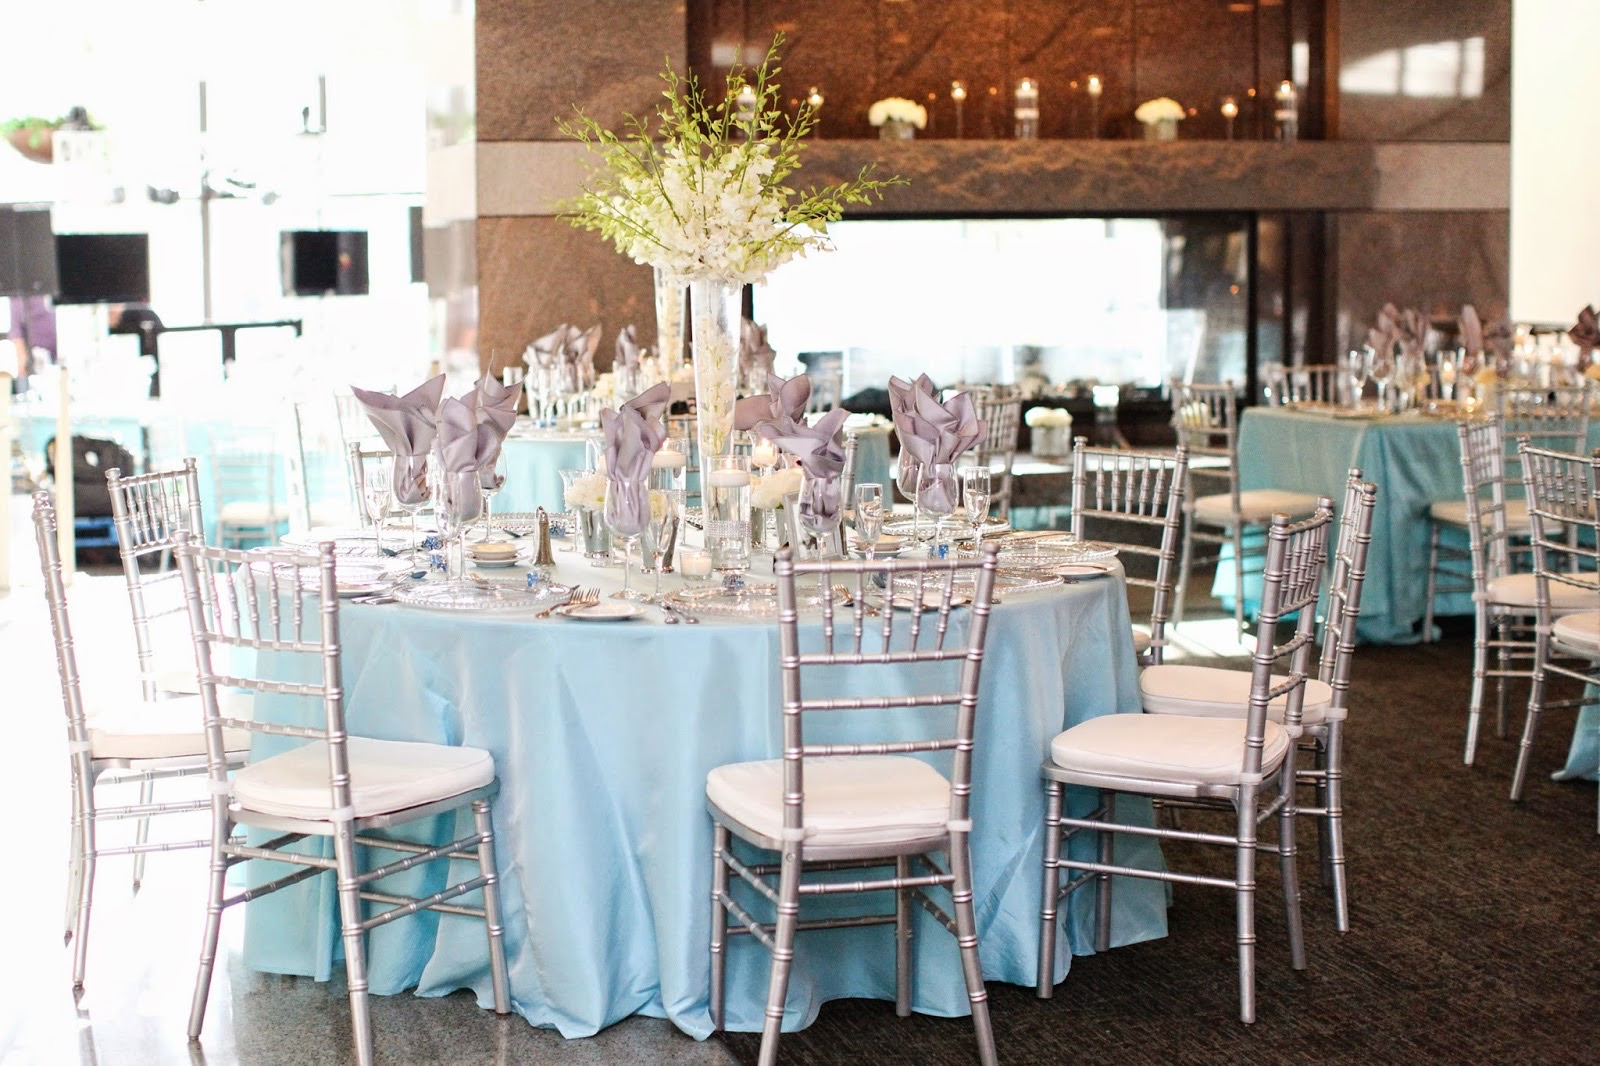 Round Table Wedding Decor With Tall Flower Centerpiece (View 10 of 30)